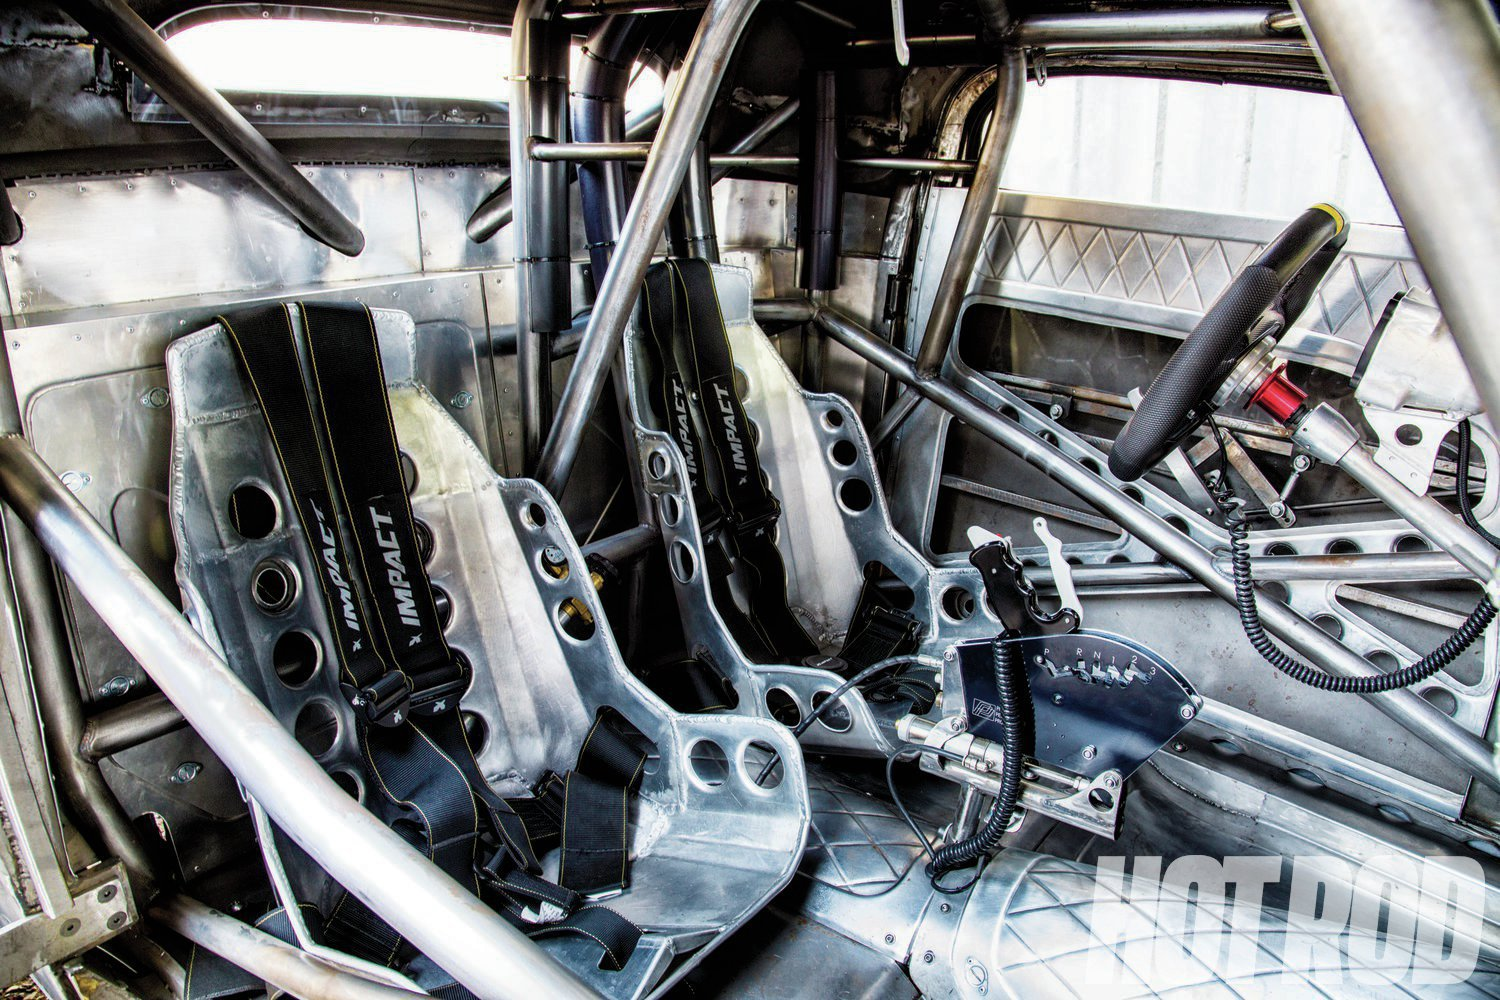 A chrome-moly rollcage gets the car certified to 7.50 seconds for drag racing. The aluminum bomber seats were created by Eddie's Chop Shop, as was pretty much everything you see in this shot.